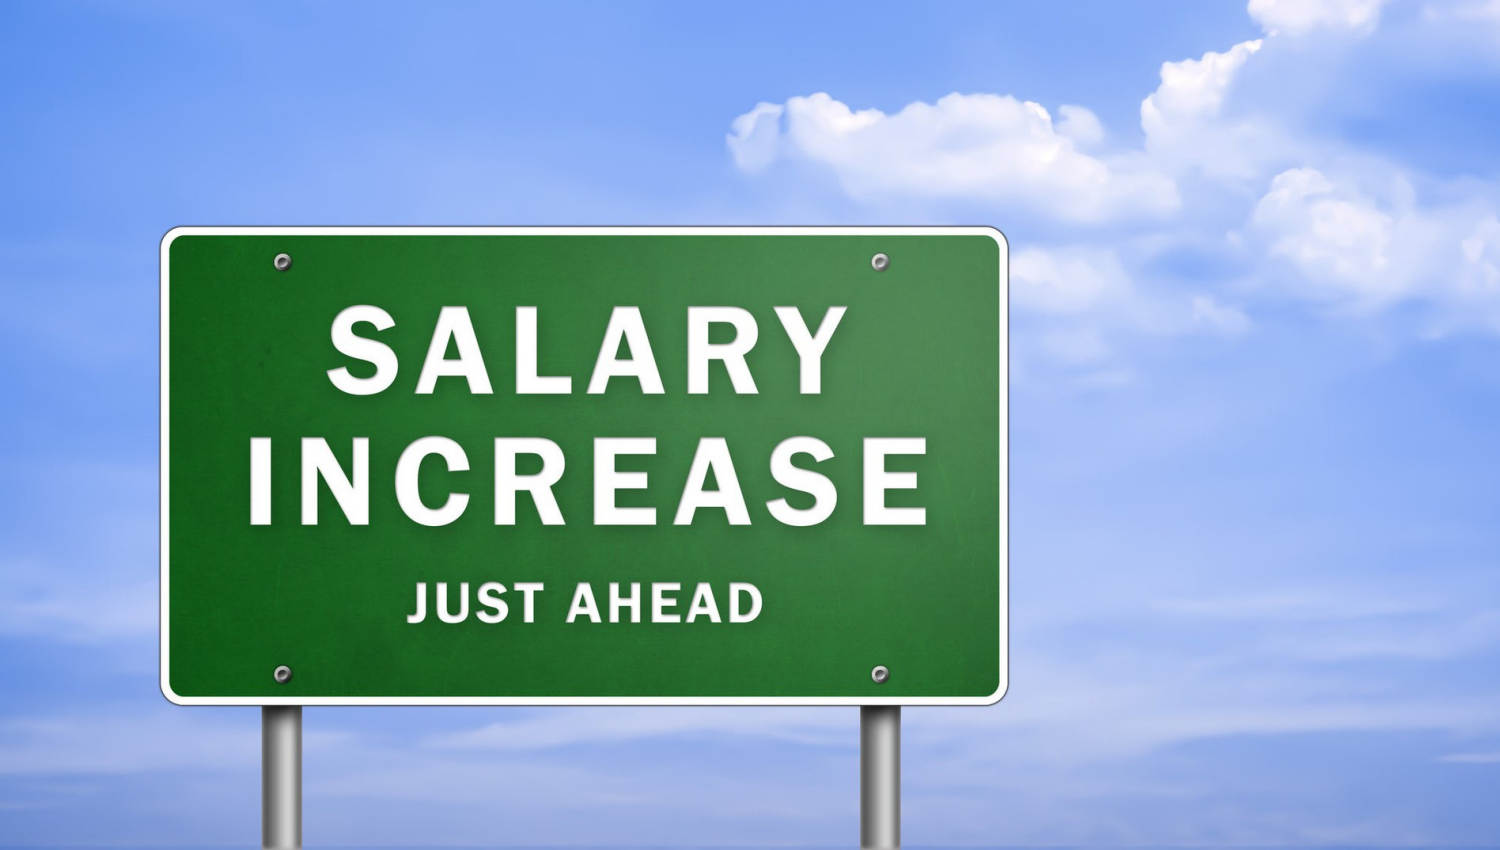 When Should You Ask For A Salary Increase?